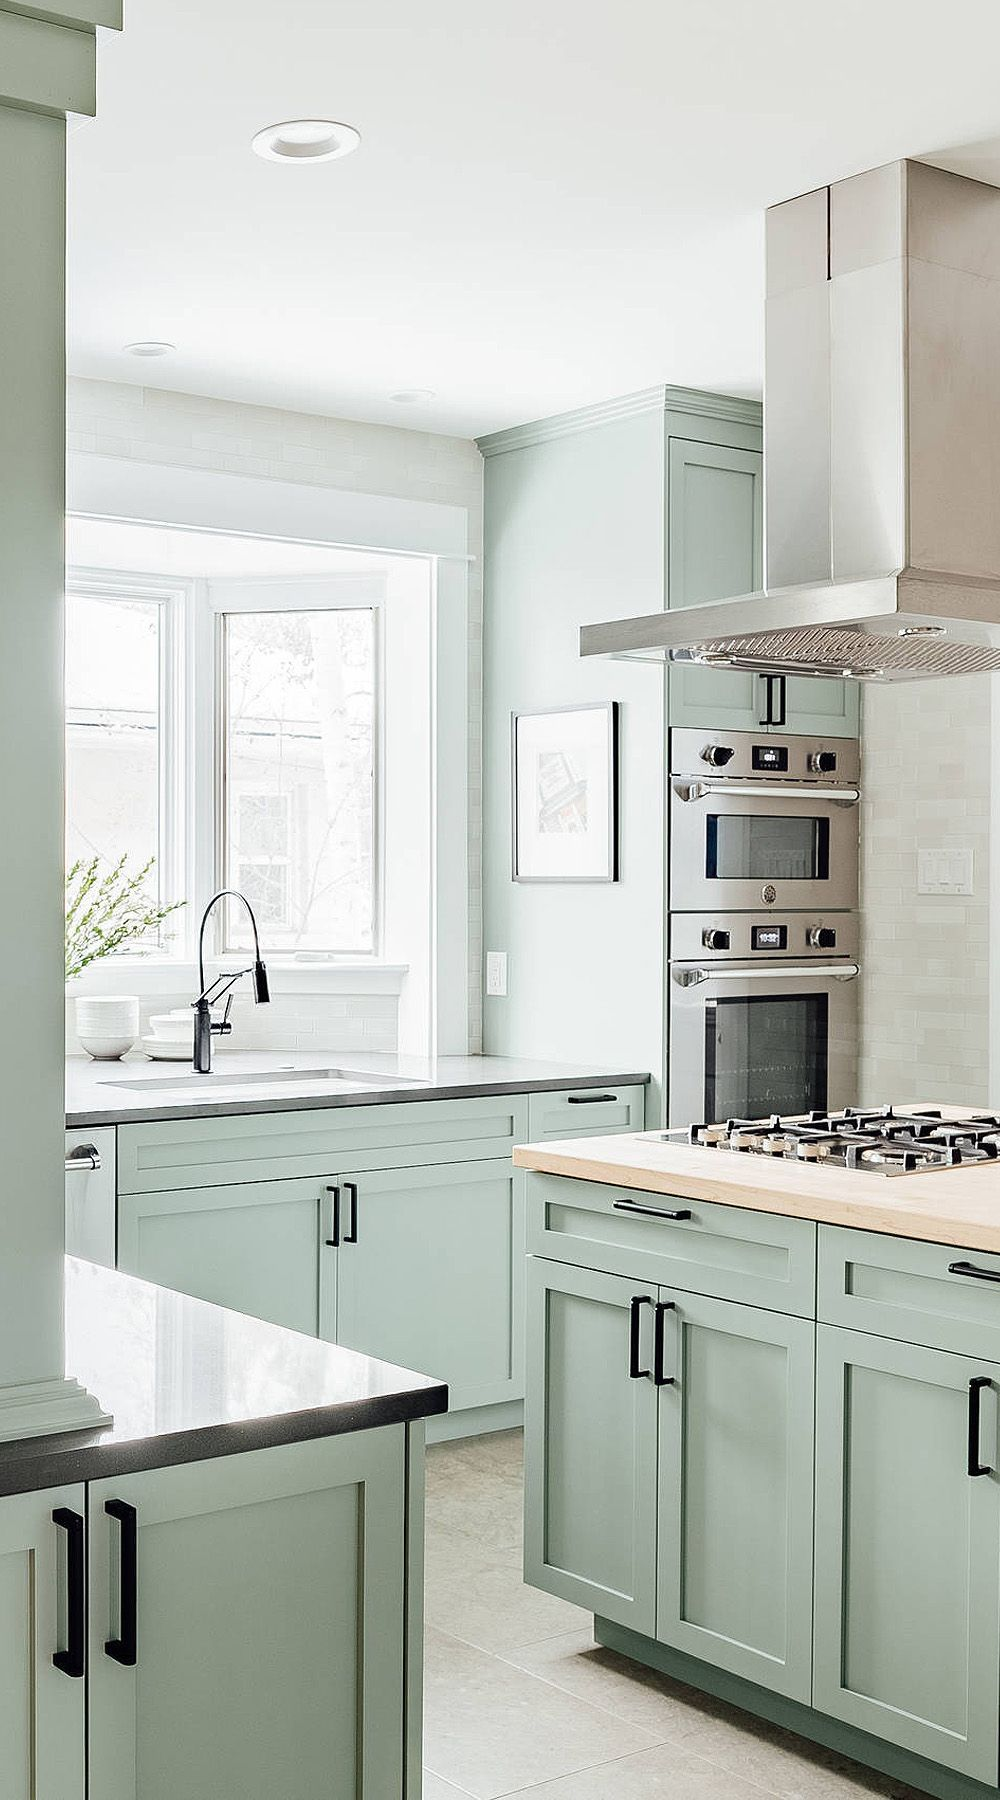 34 Top Green Kitchen Cabinets Good For Kitchen Get Ideas In 2020 Kitchen Cabinets Grey And White Green Kitchen Cabinets Grey Kitchen Walls White Cabinets